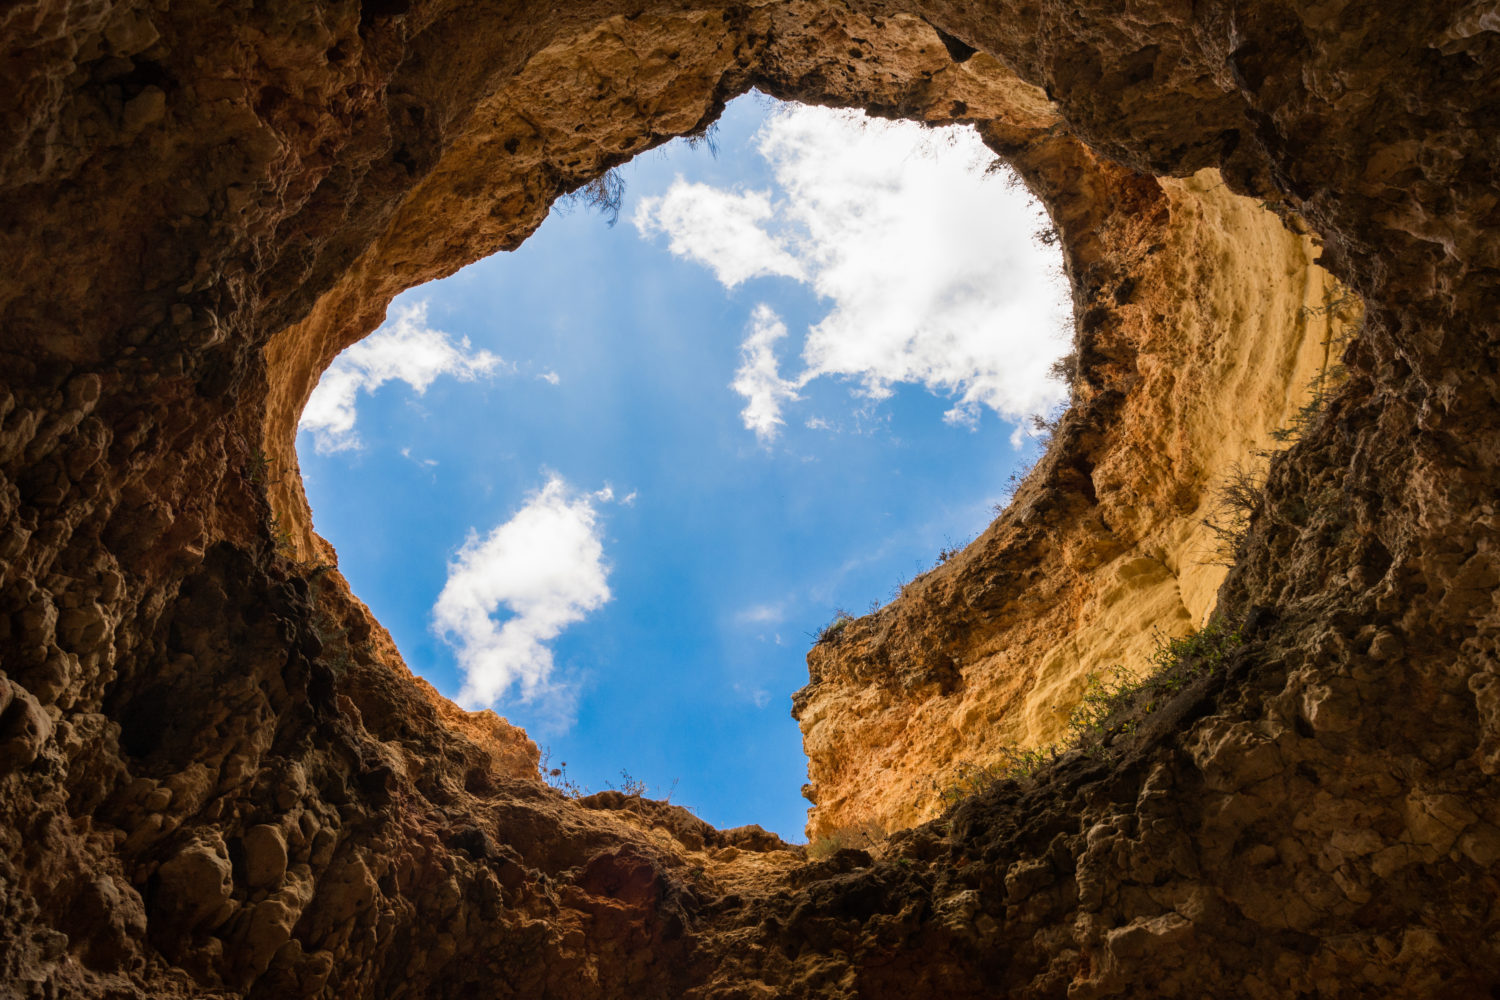 Standing in a hole looking up at the sky